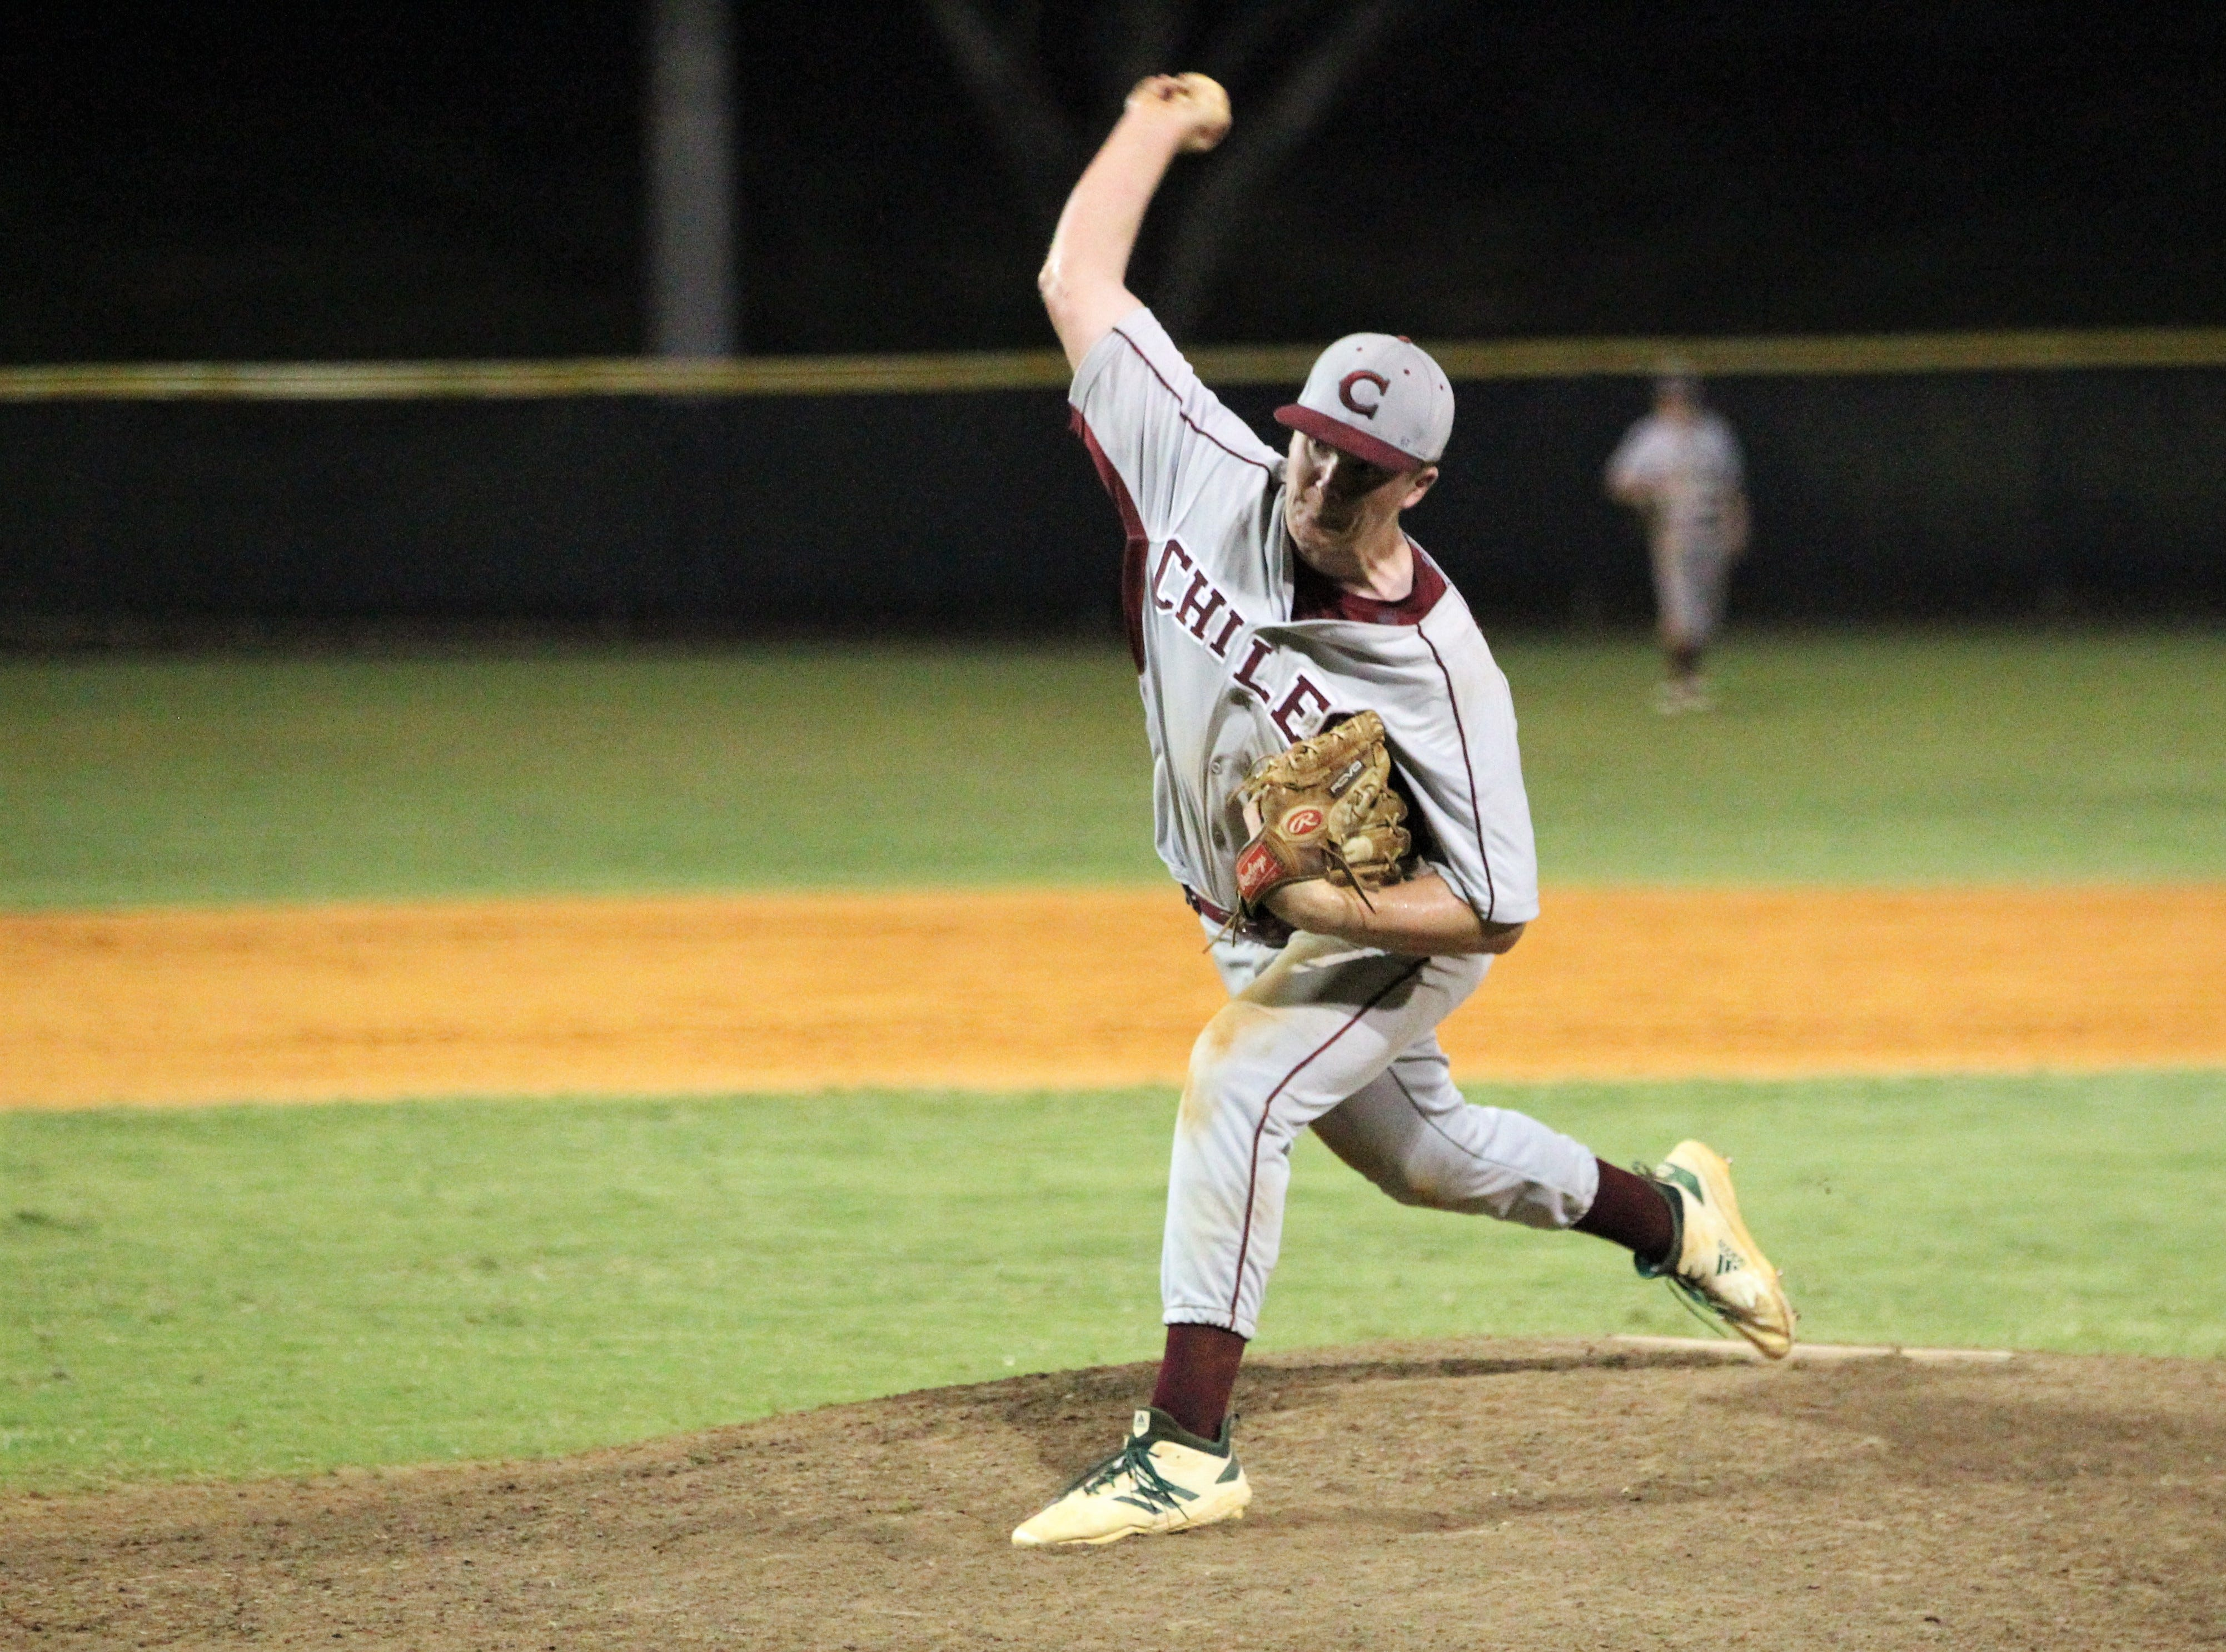 Chiles junior Wyatt Dodd pitches as Lincoln baseball beat Chiles 5-4  in 10 innings during a District 2-8A championship game on Thursday, May 9, 2019.